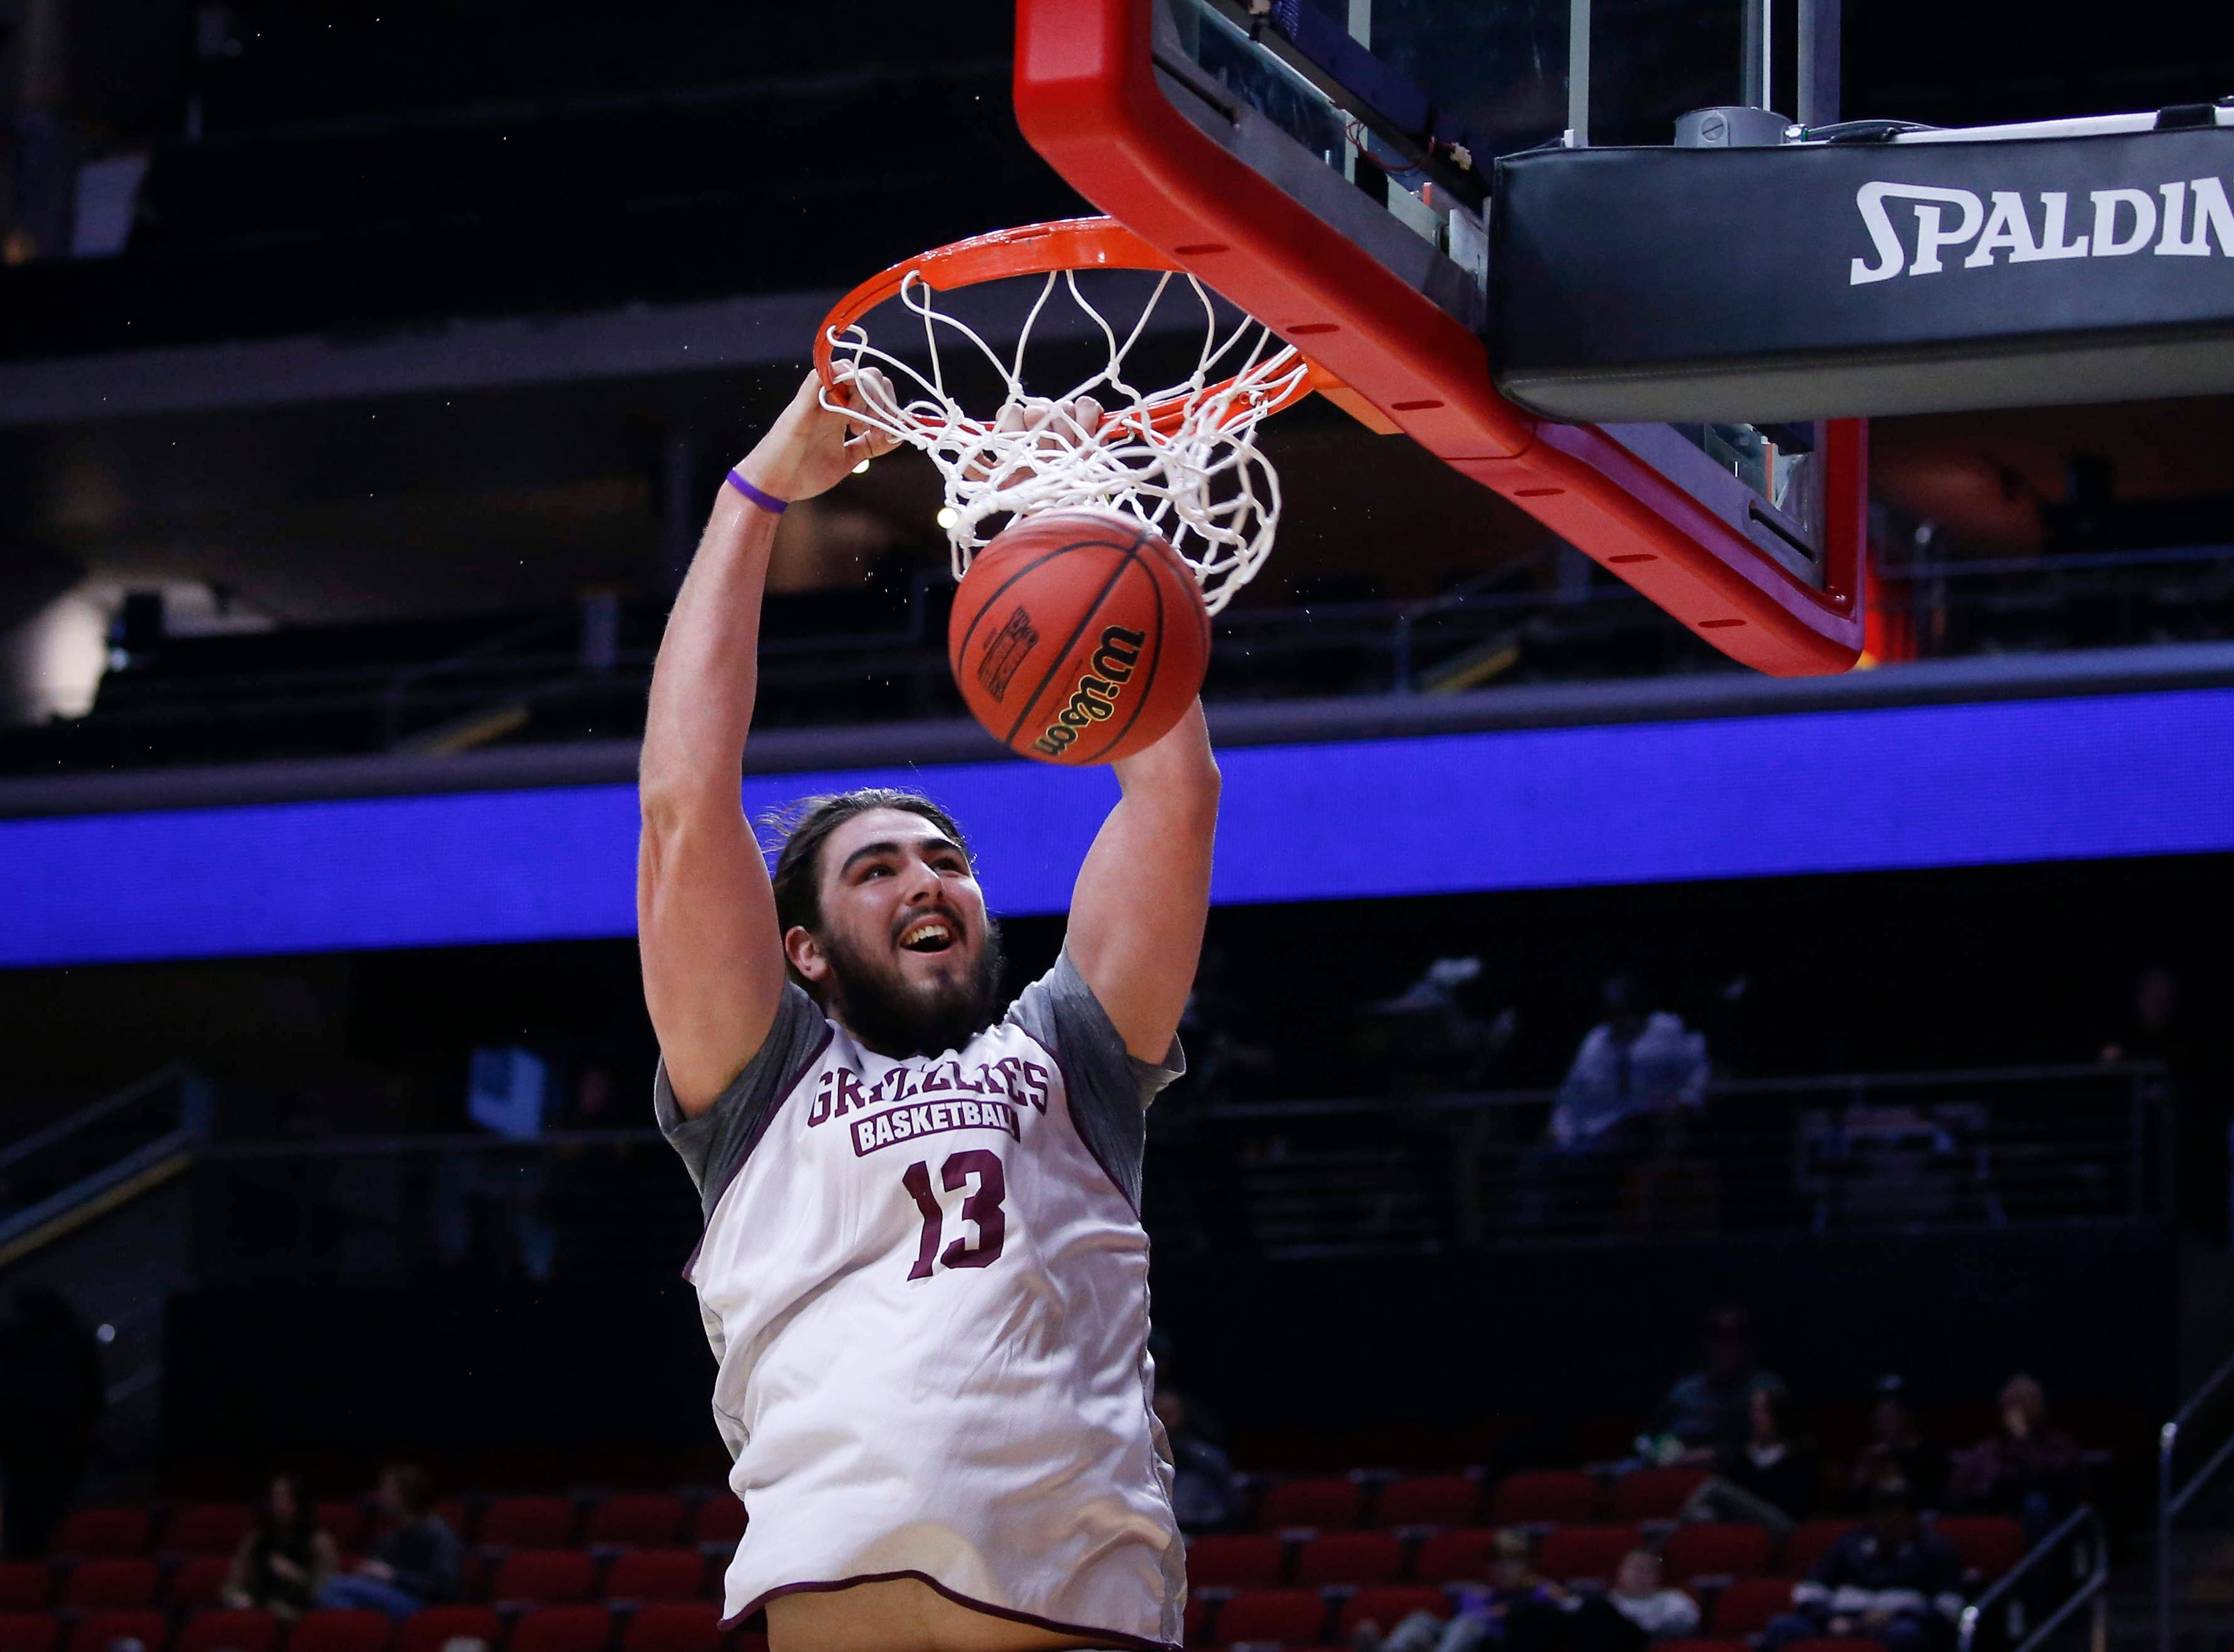 Montana freshman Ben Carter dunks the ball during open practice on Wednesday, March 20, 2019, at Wells Fargo Arena in Des Moines, Iowa.